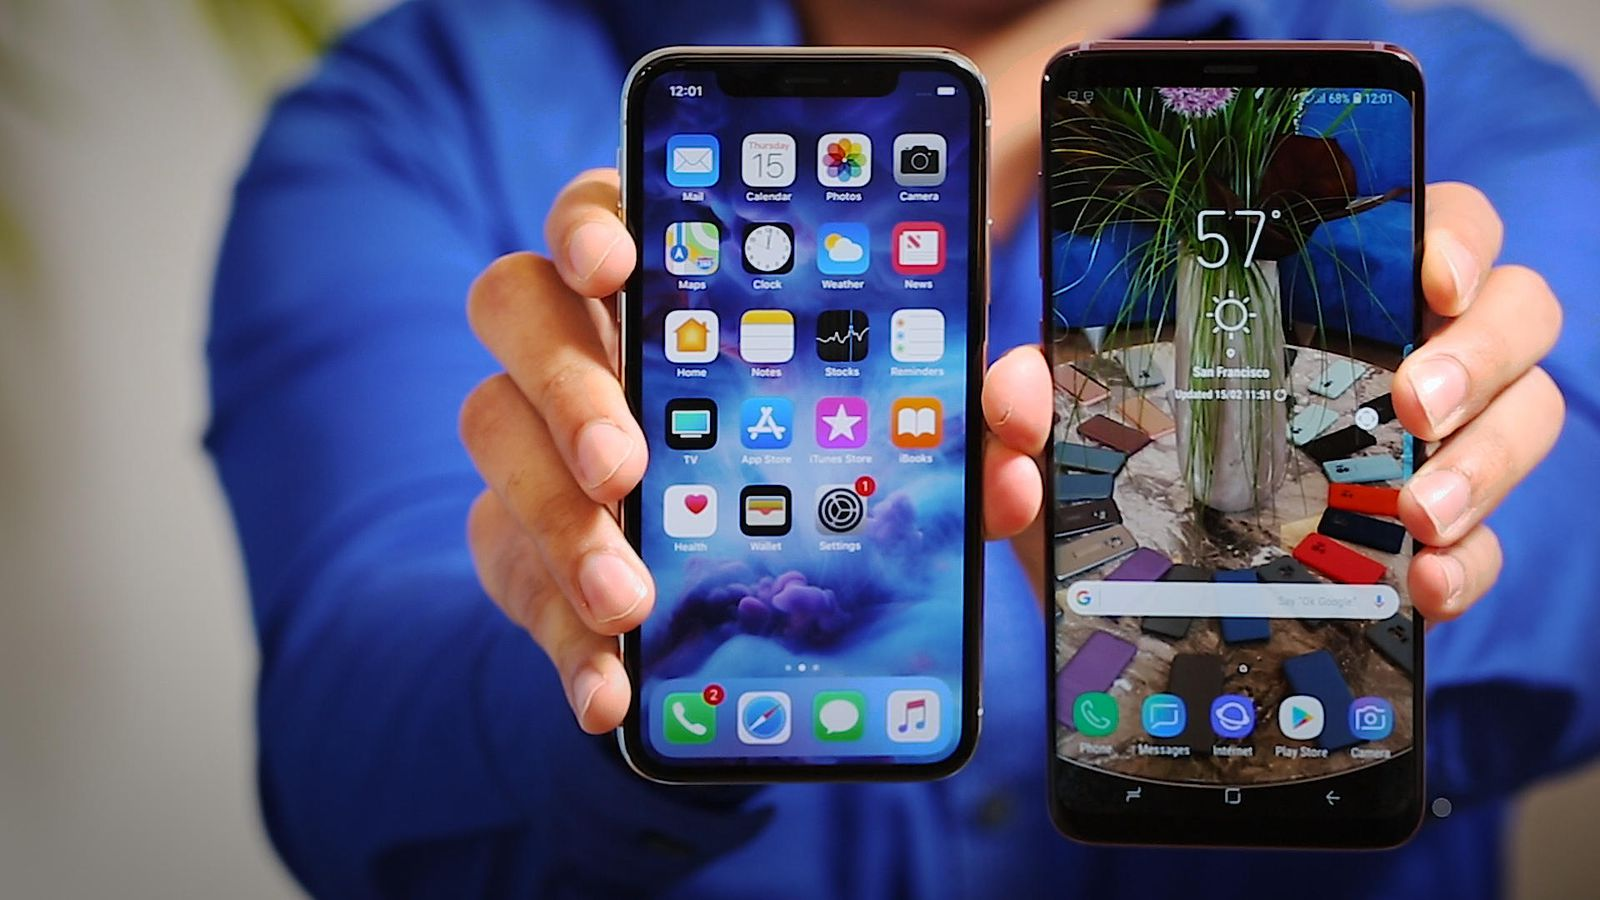 Samsung Galaxy S10 vs iPhone XR- Samsung Pulls The Most Unexpected Trick